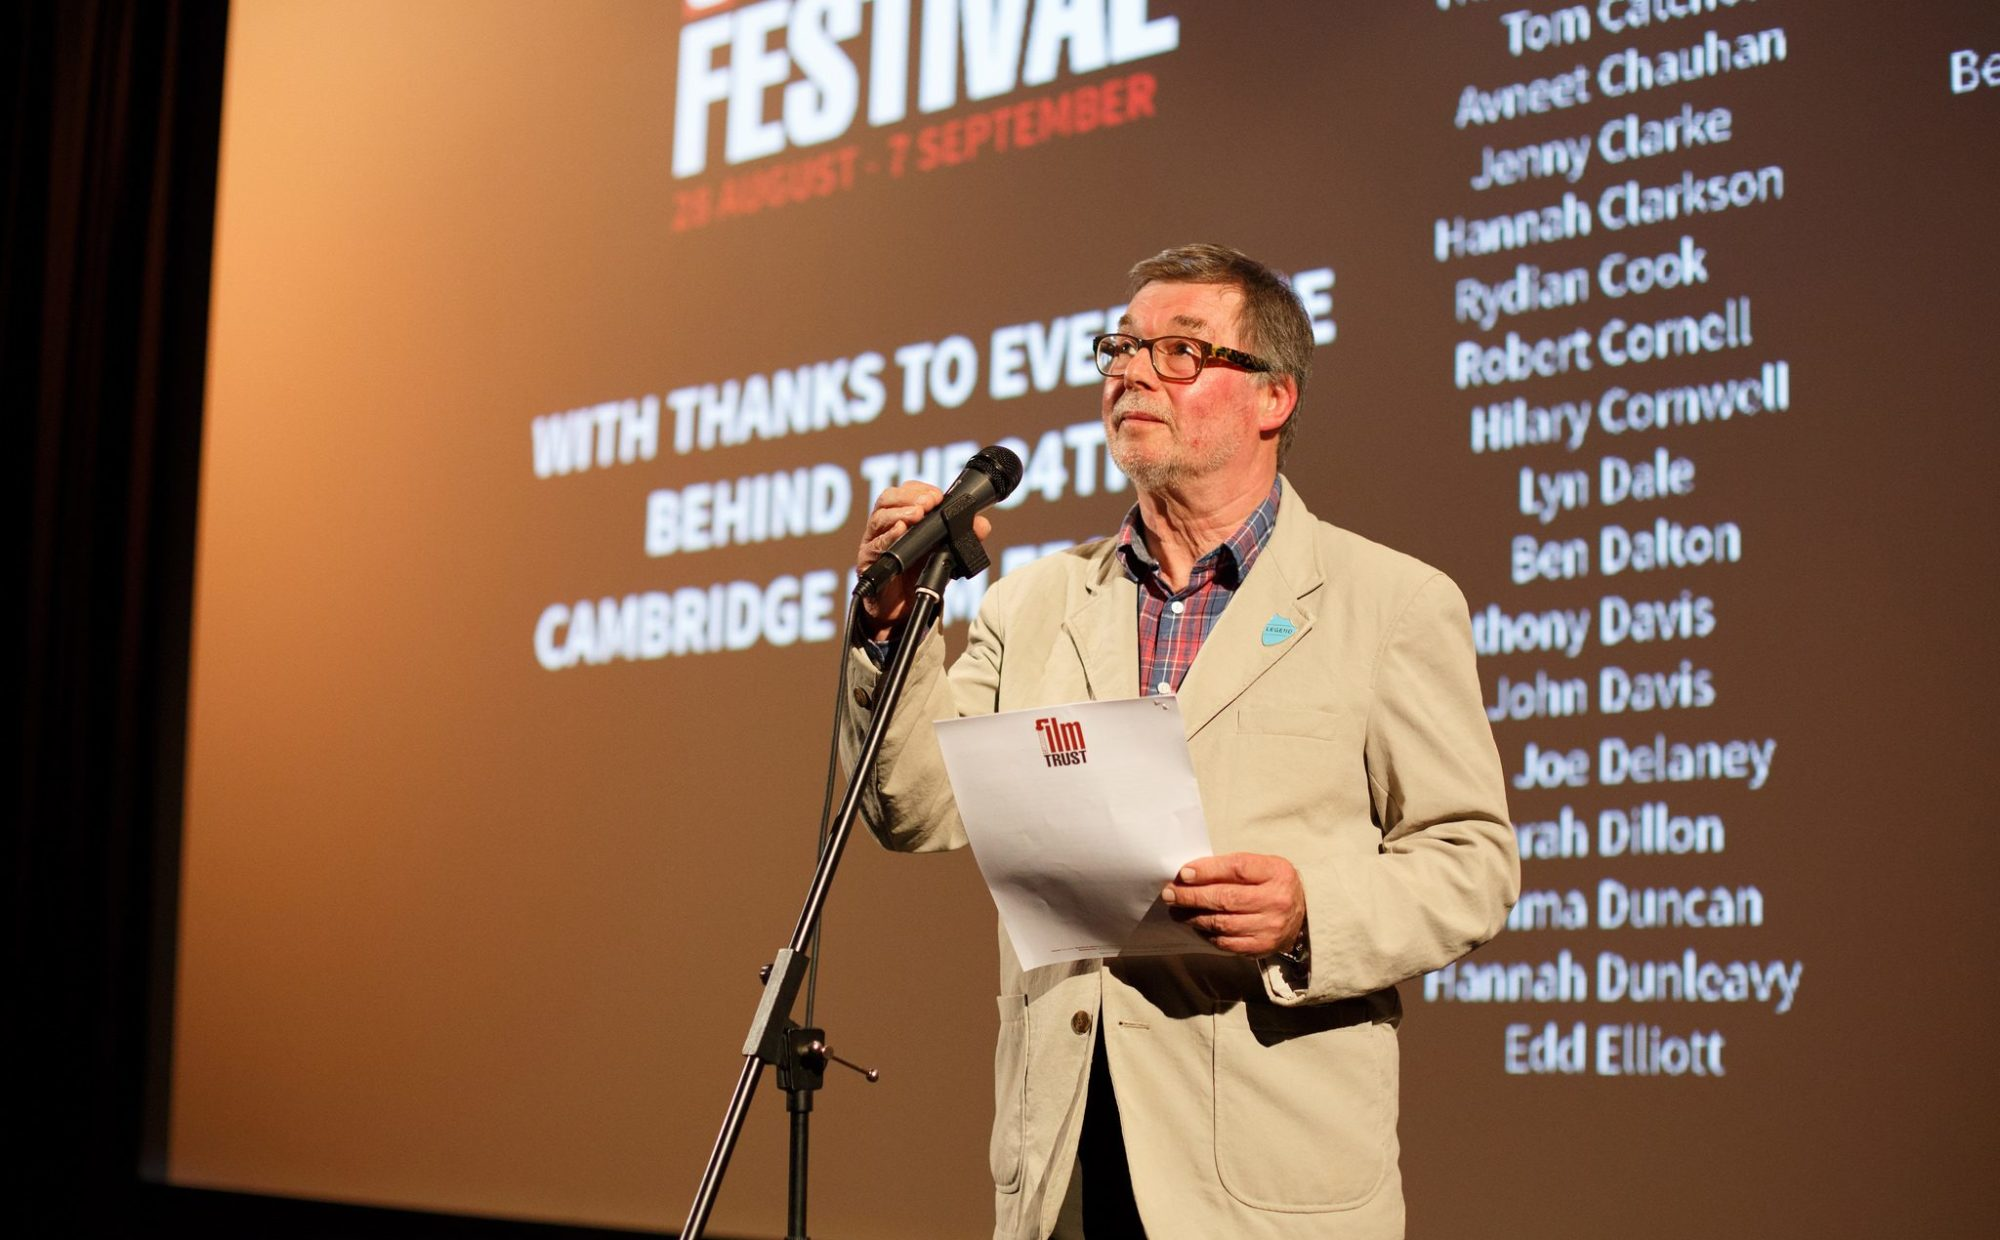 Cambridge Film Festival speech